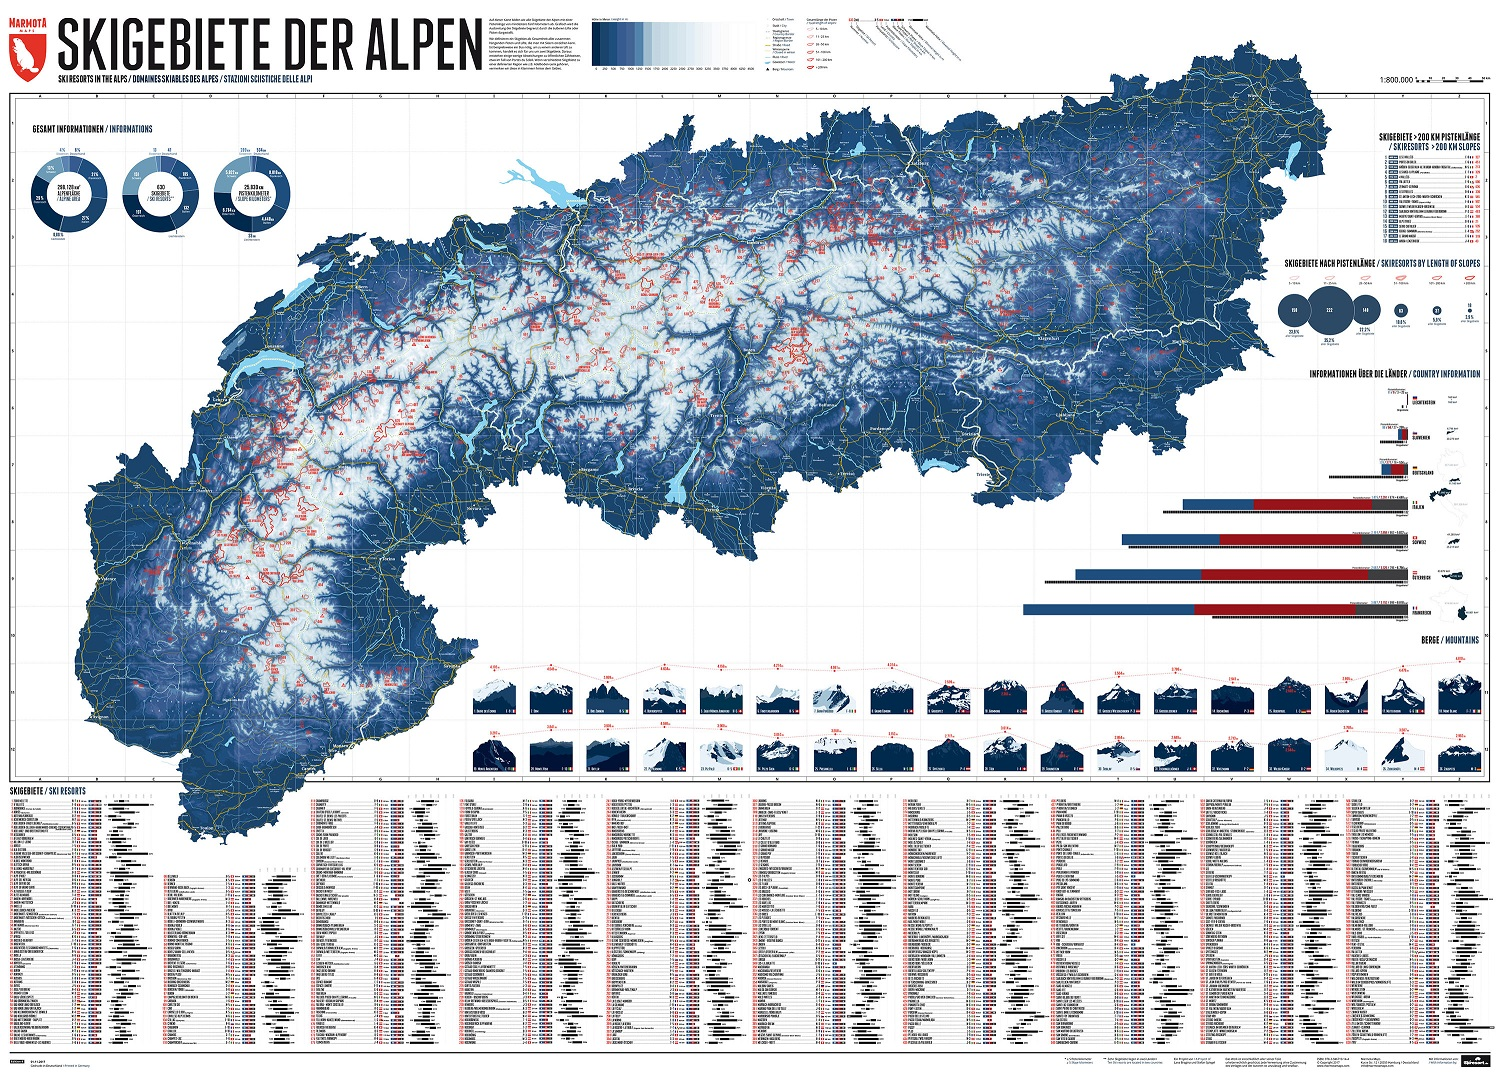 Win a Marmota Maps 630 Ski Resorts Of The Alps with nidski.com